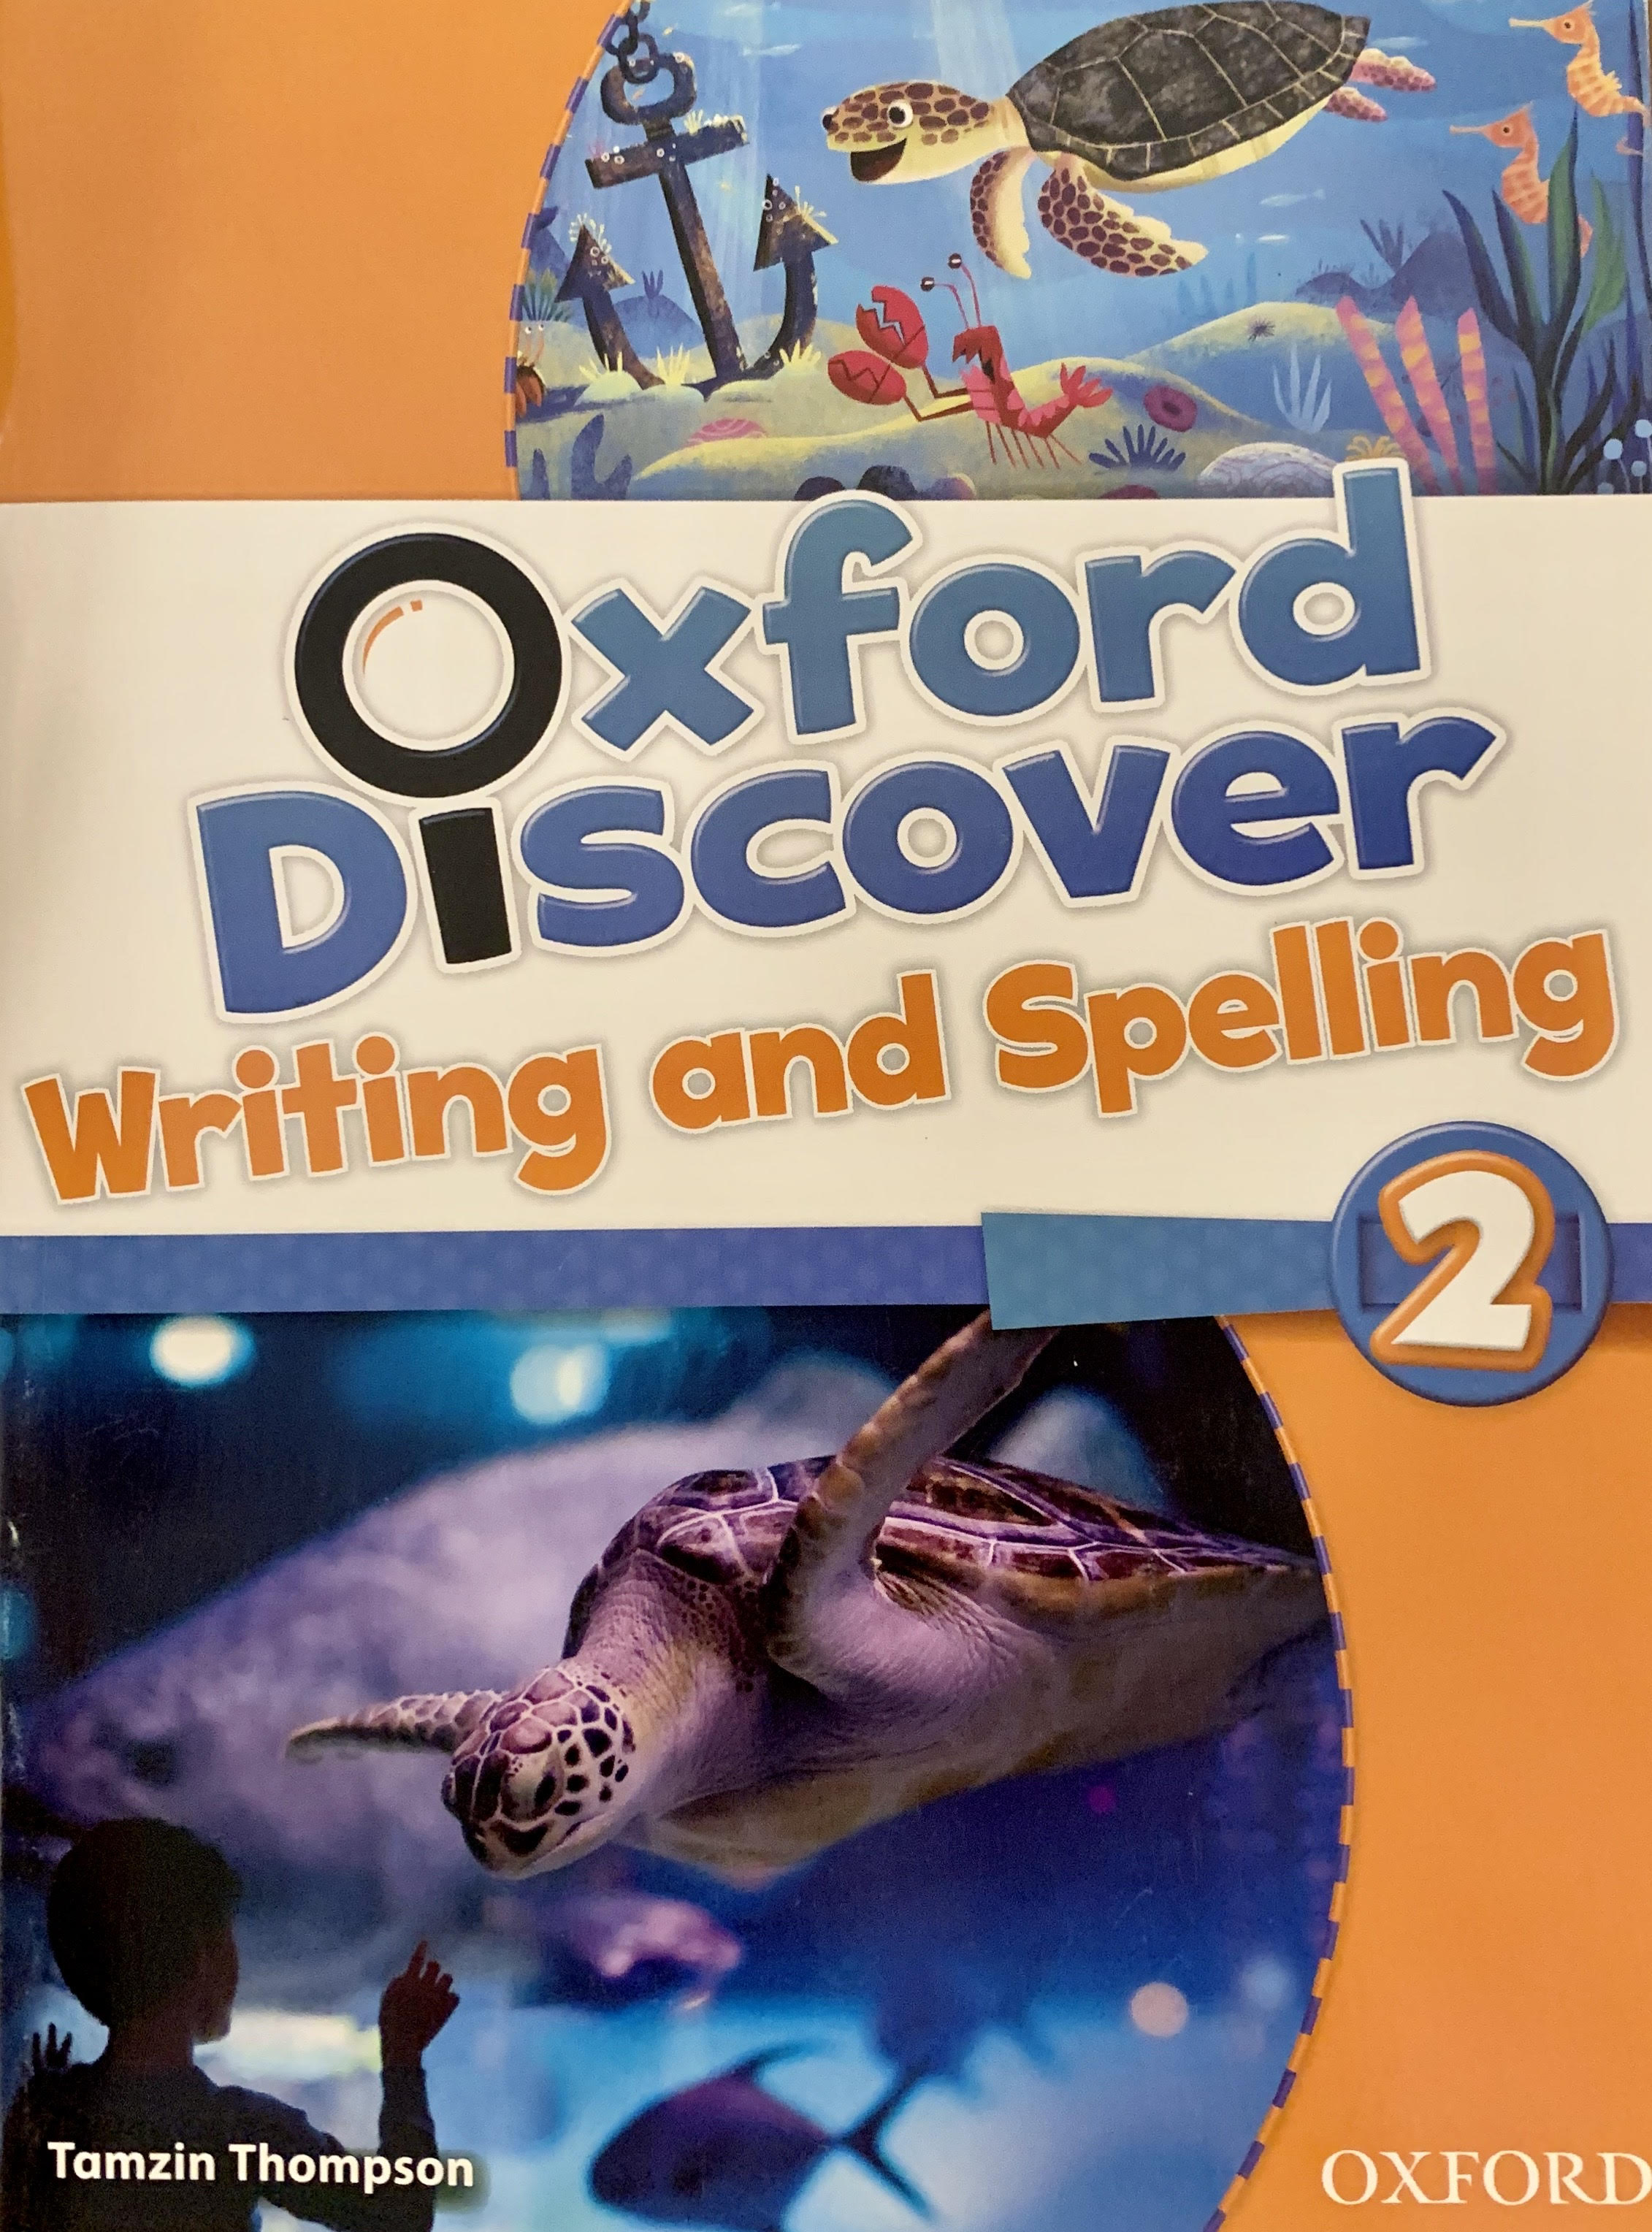 Oxford Discover Writing and Spelling 2